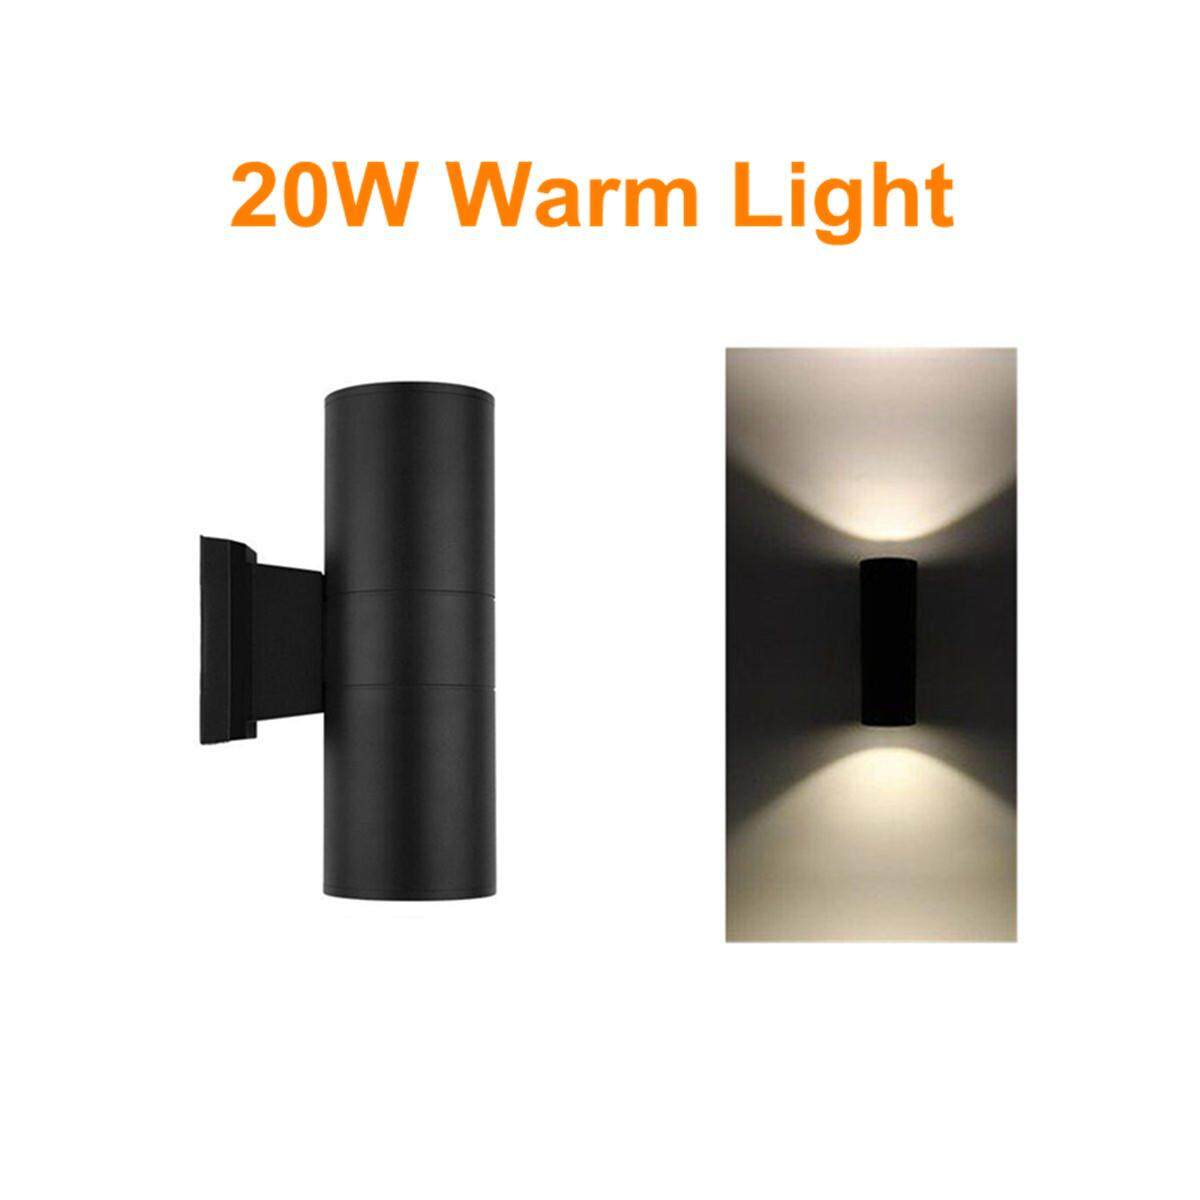 10W LED Dual-Head Up & Down Wall Light Sconce Lamp Outdoor Waterproof [20W warm light]